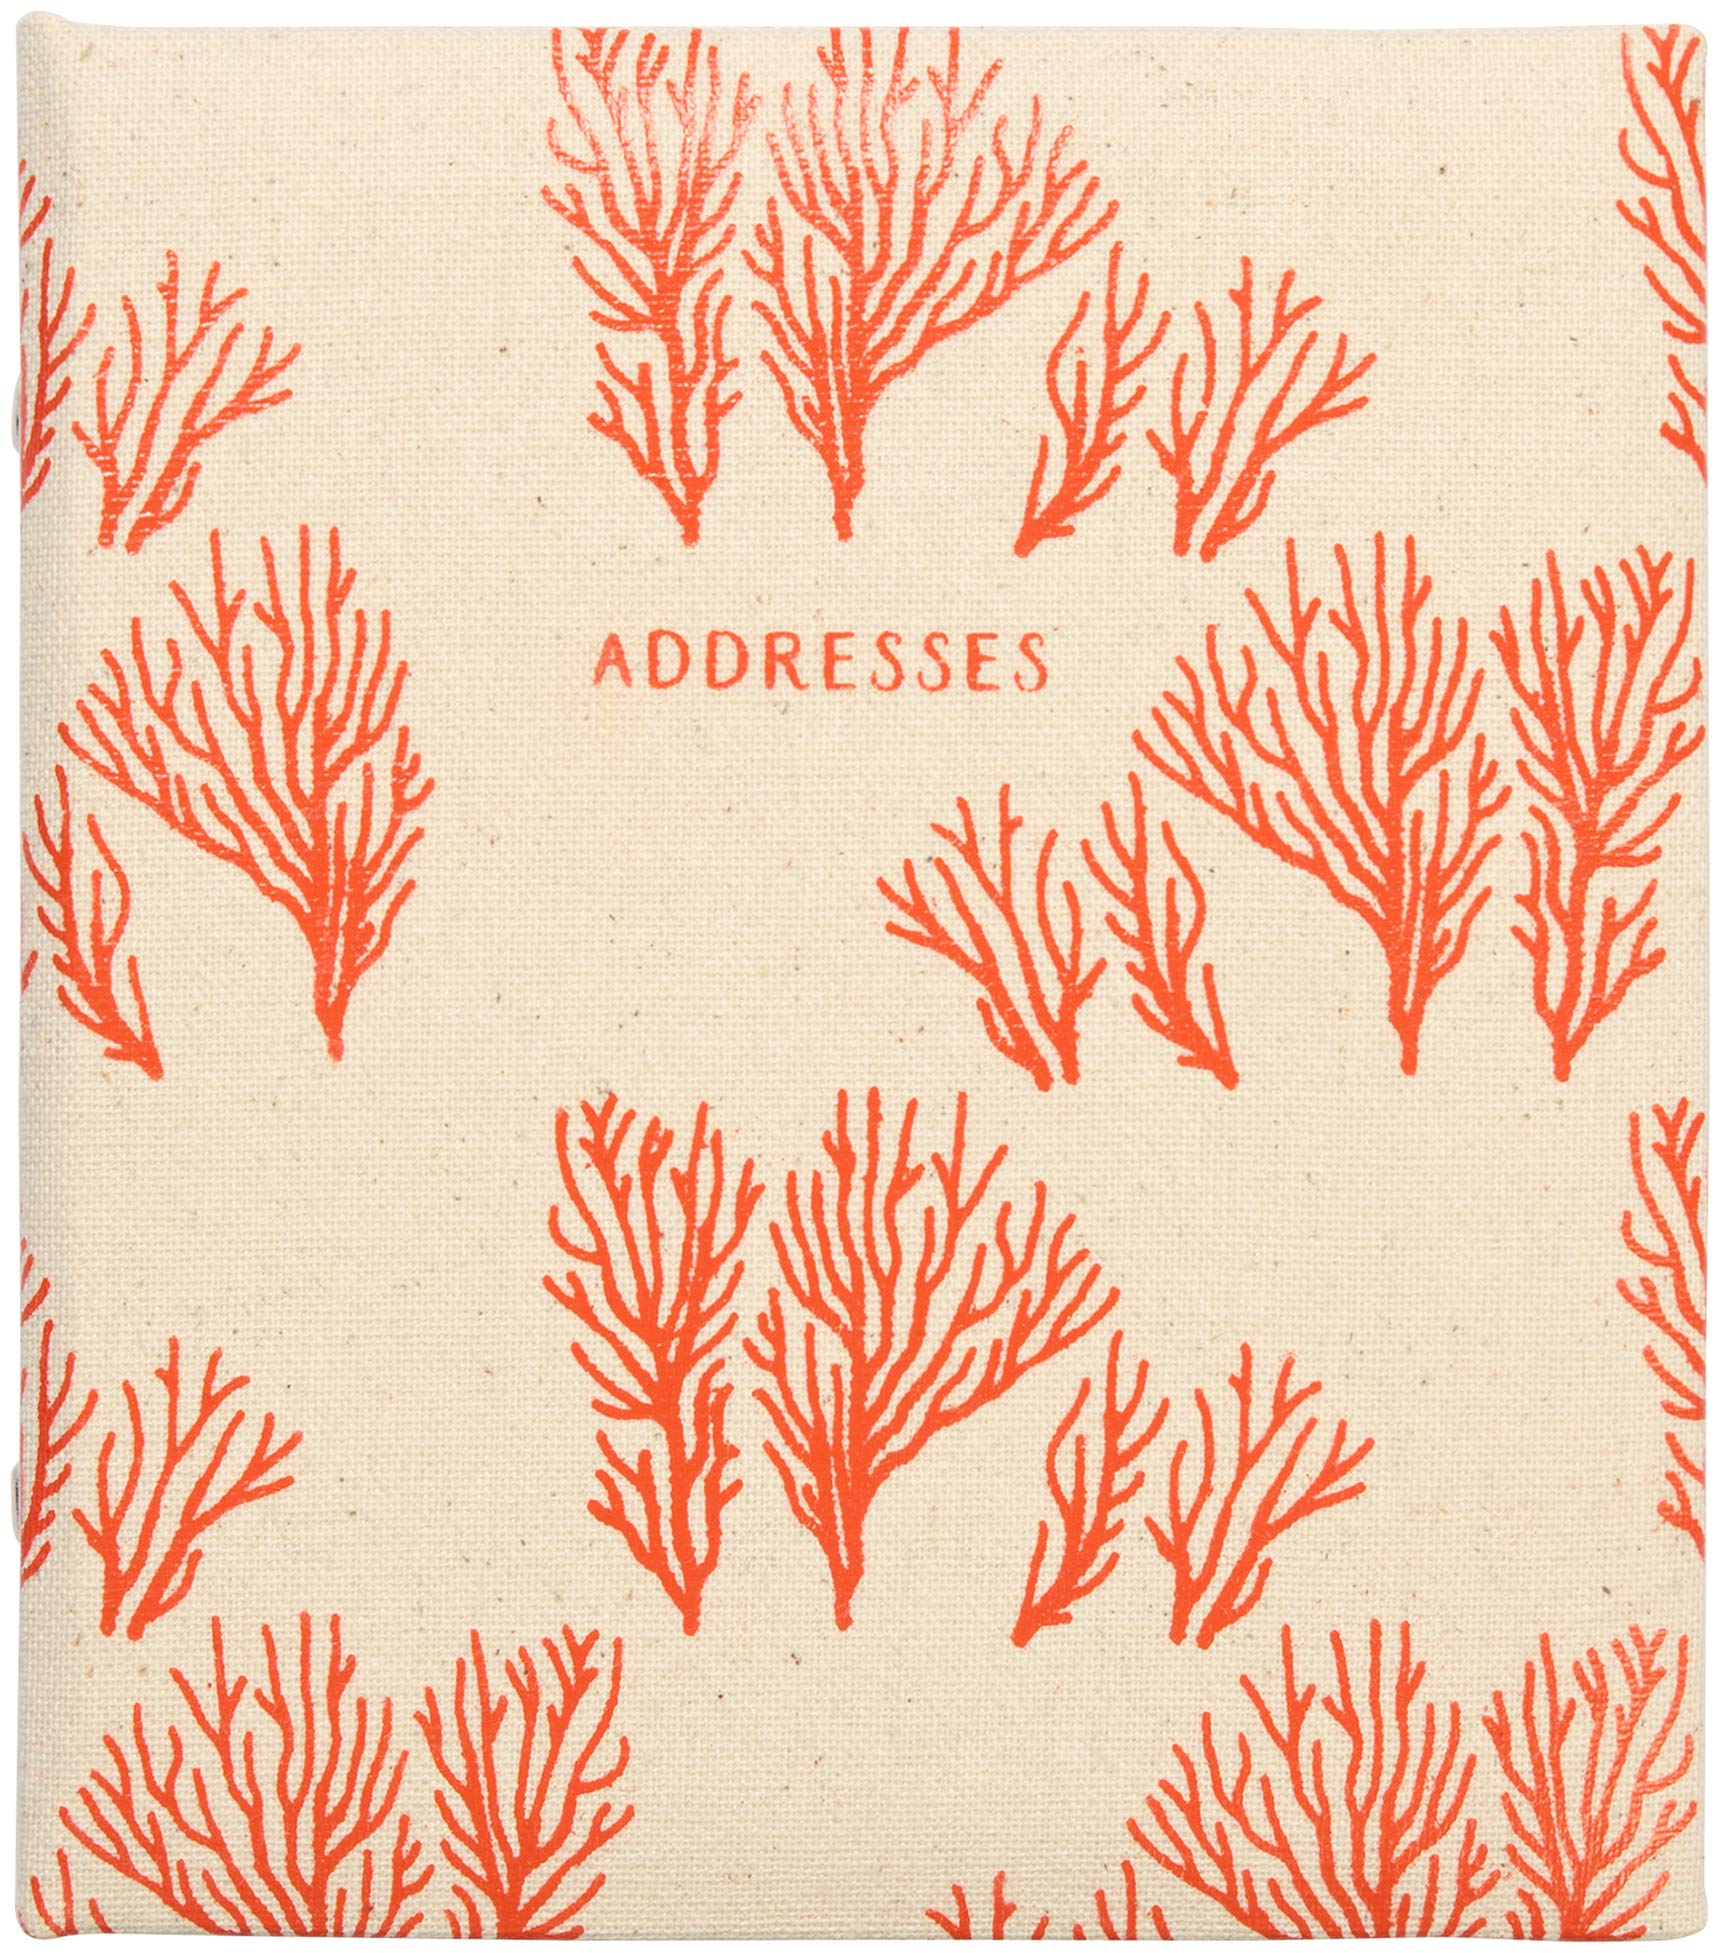 C.R. Gibson Beach House and Nautical Décor Tan and Pink Coral Refillable Large Address Book, 440 Entries, 6.5'' W x 7.25'' H